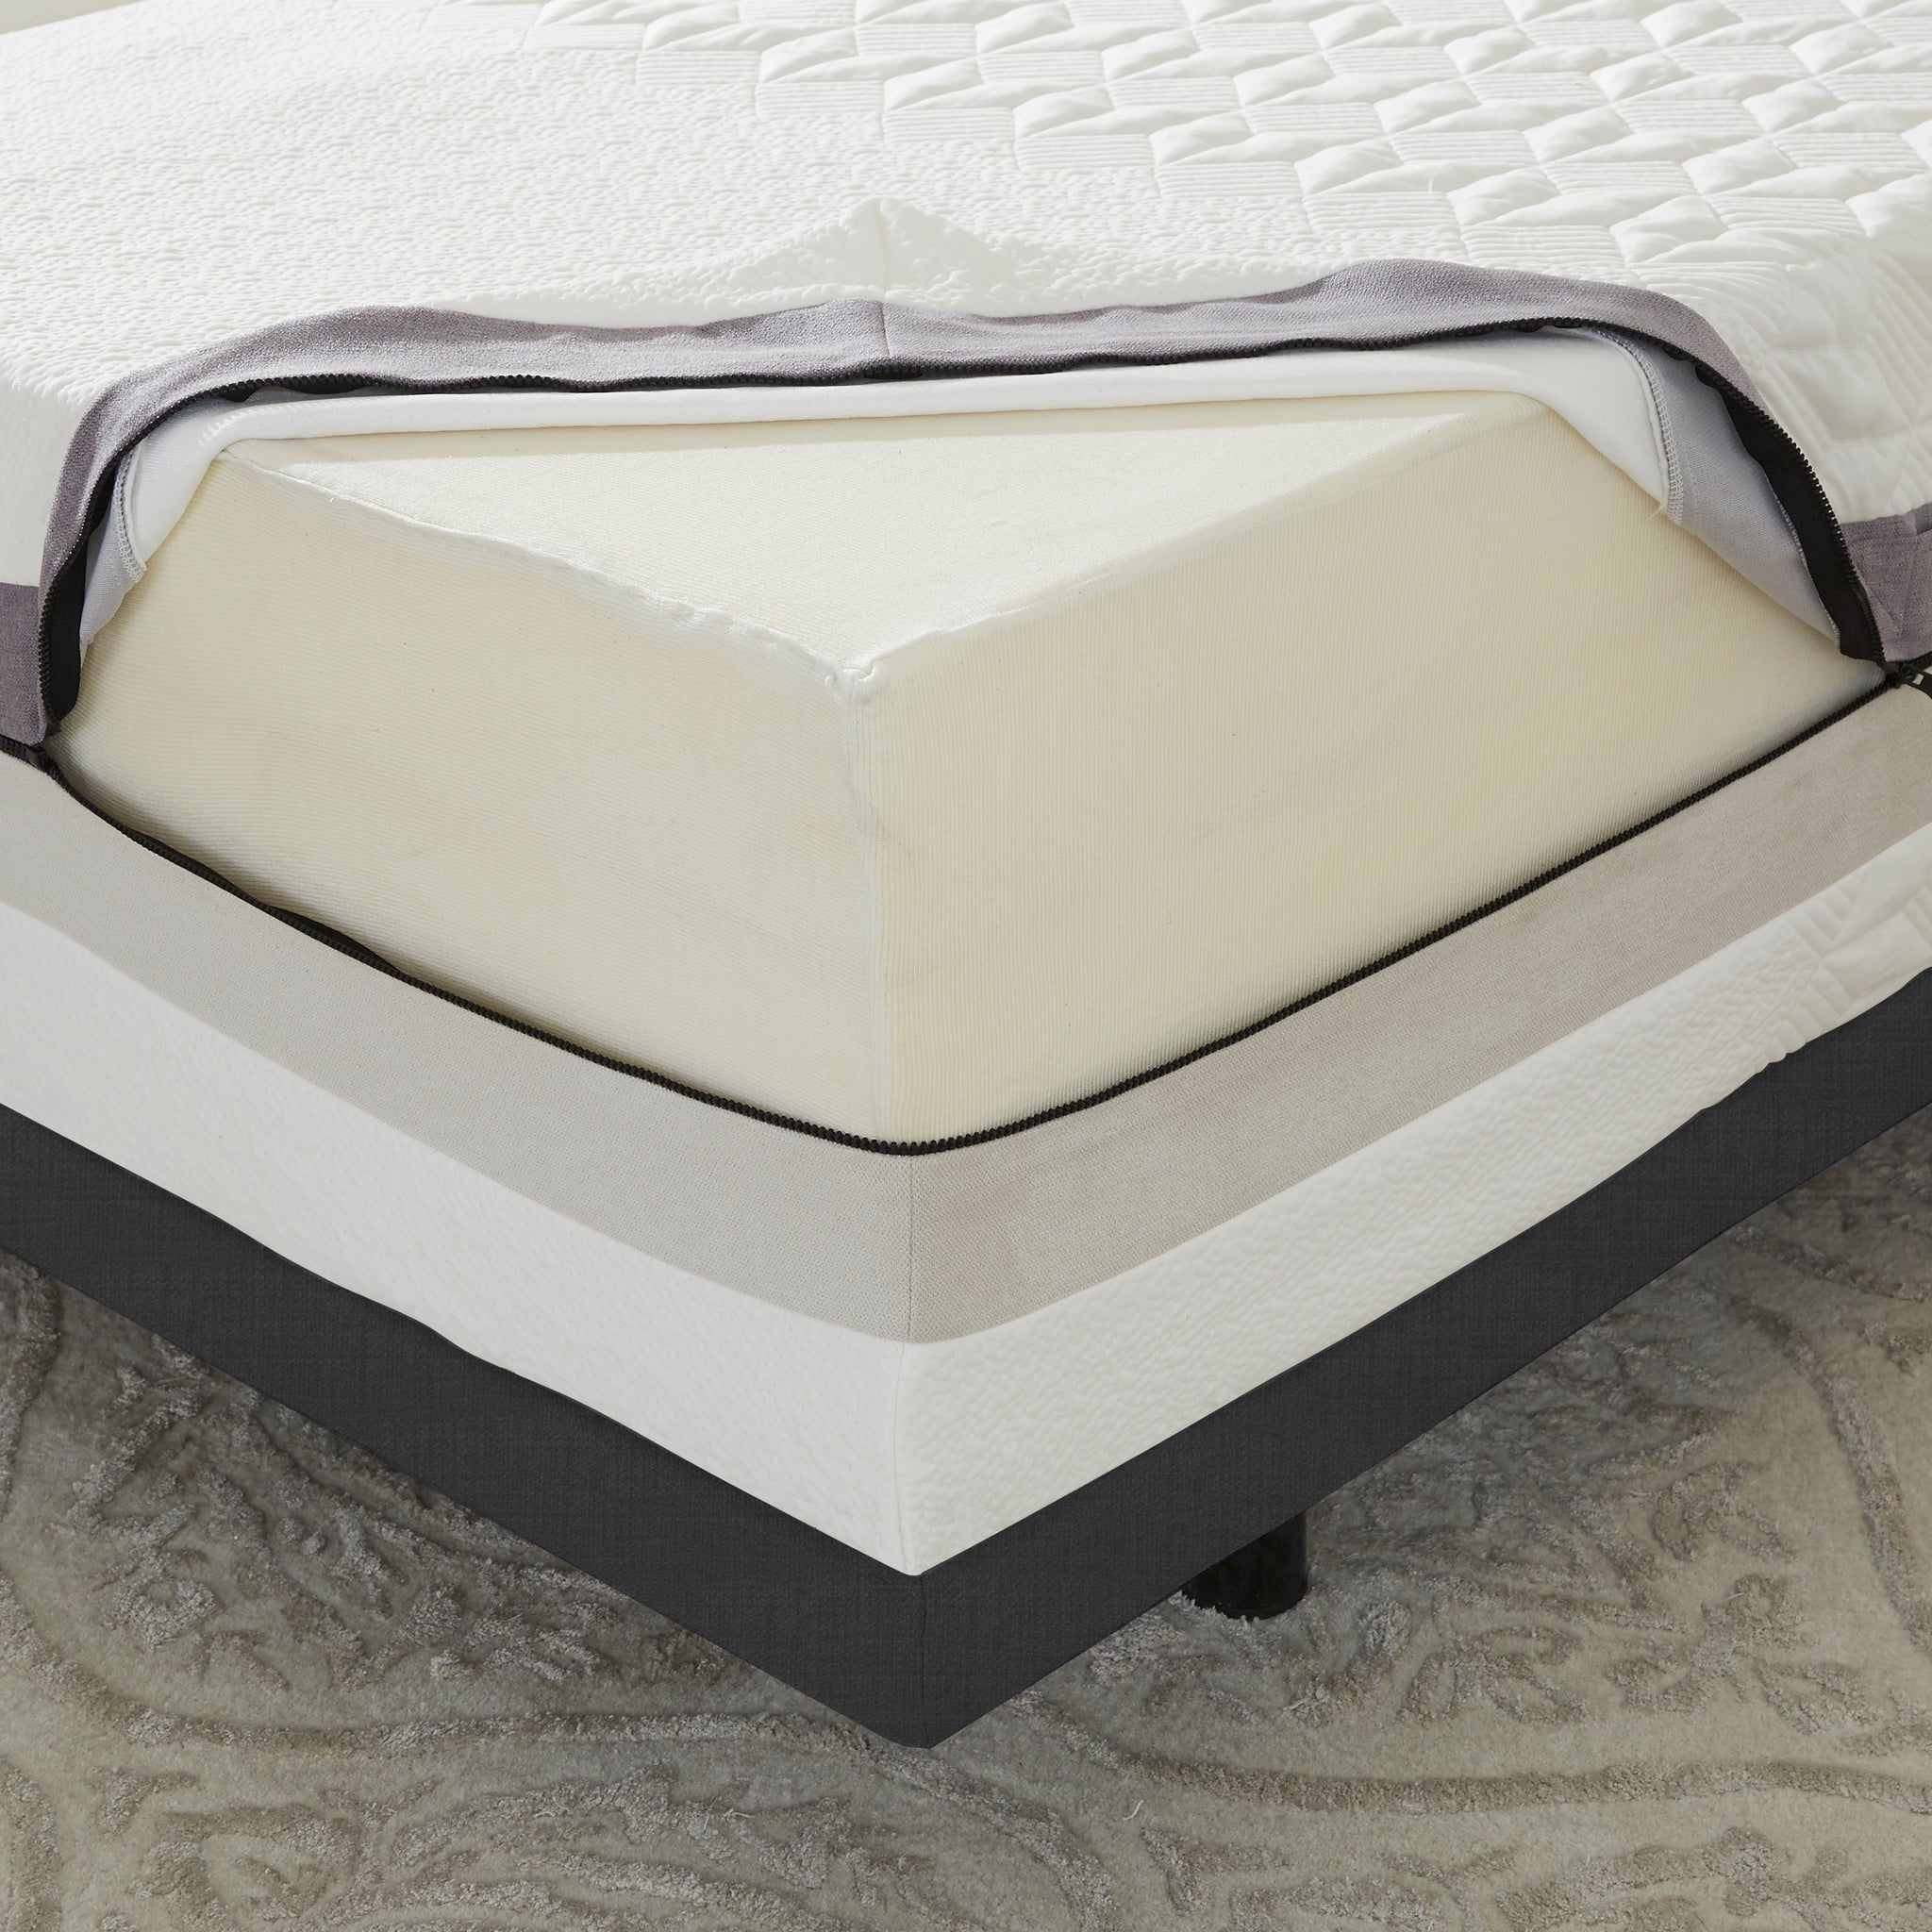 "13"" iFlip Napa 2-Sided Memory Foam Mattress"